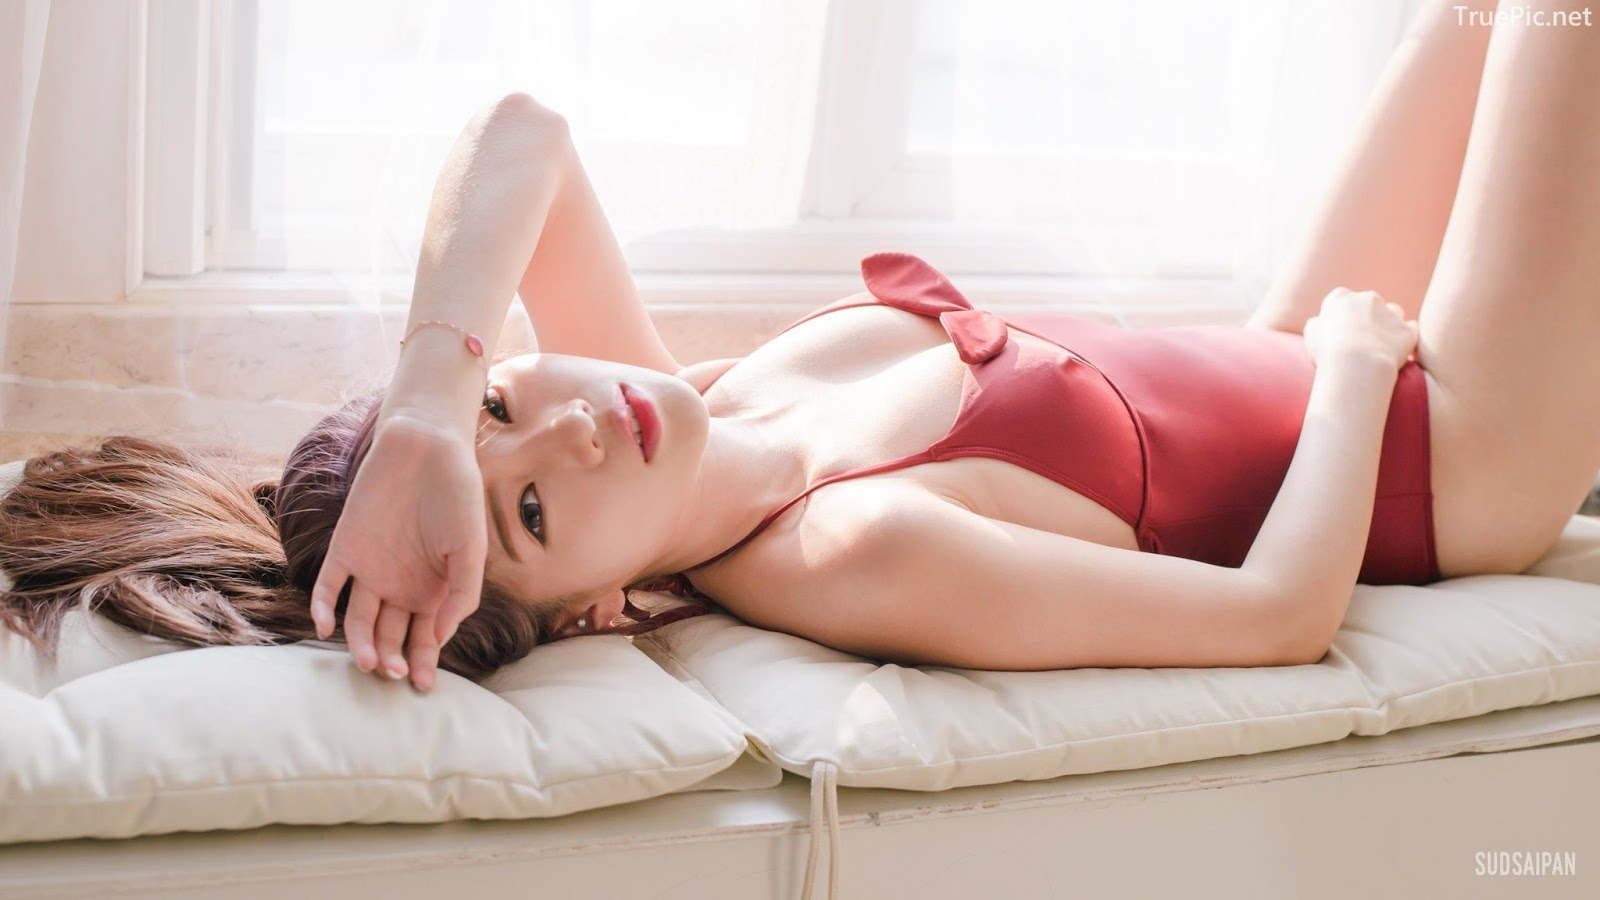 Chinese hot streaming girl - 簡欣汝 - Red Swimming Suit - TruePic.net - Picture 2